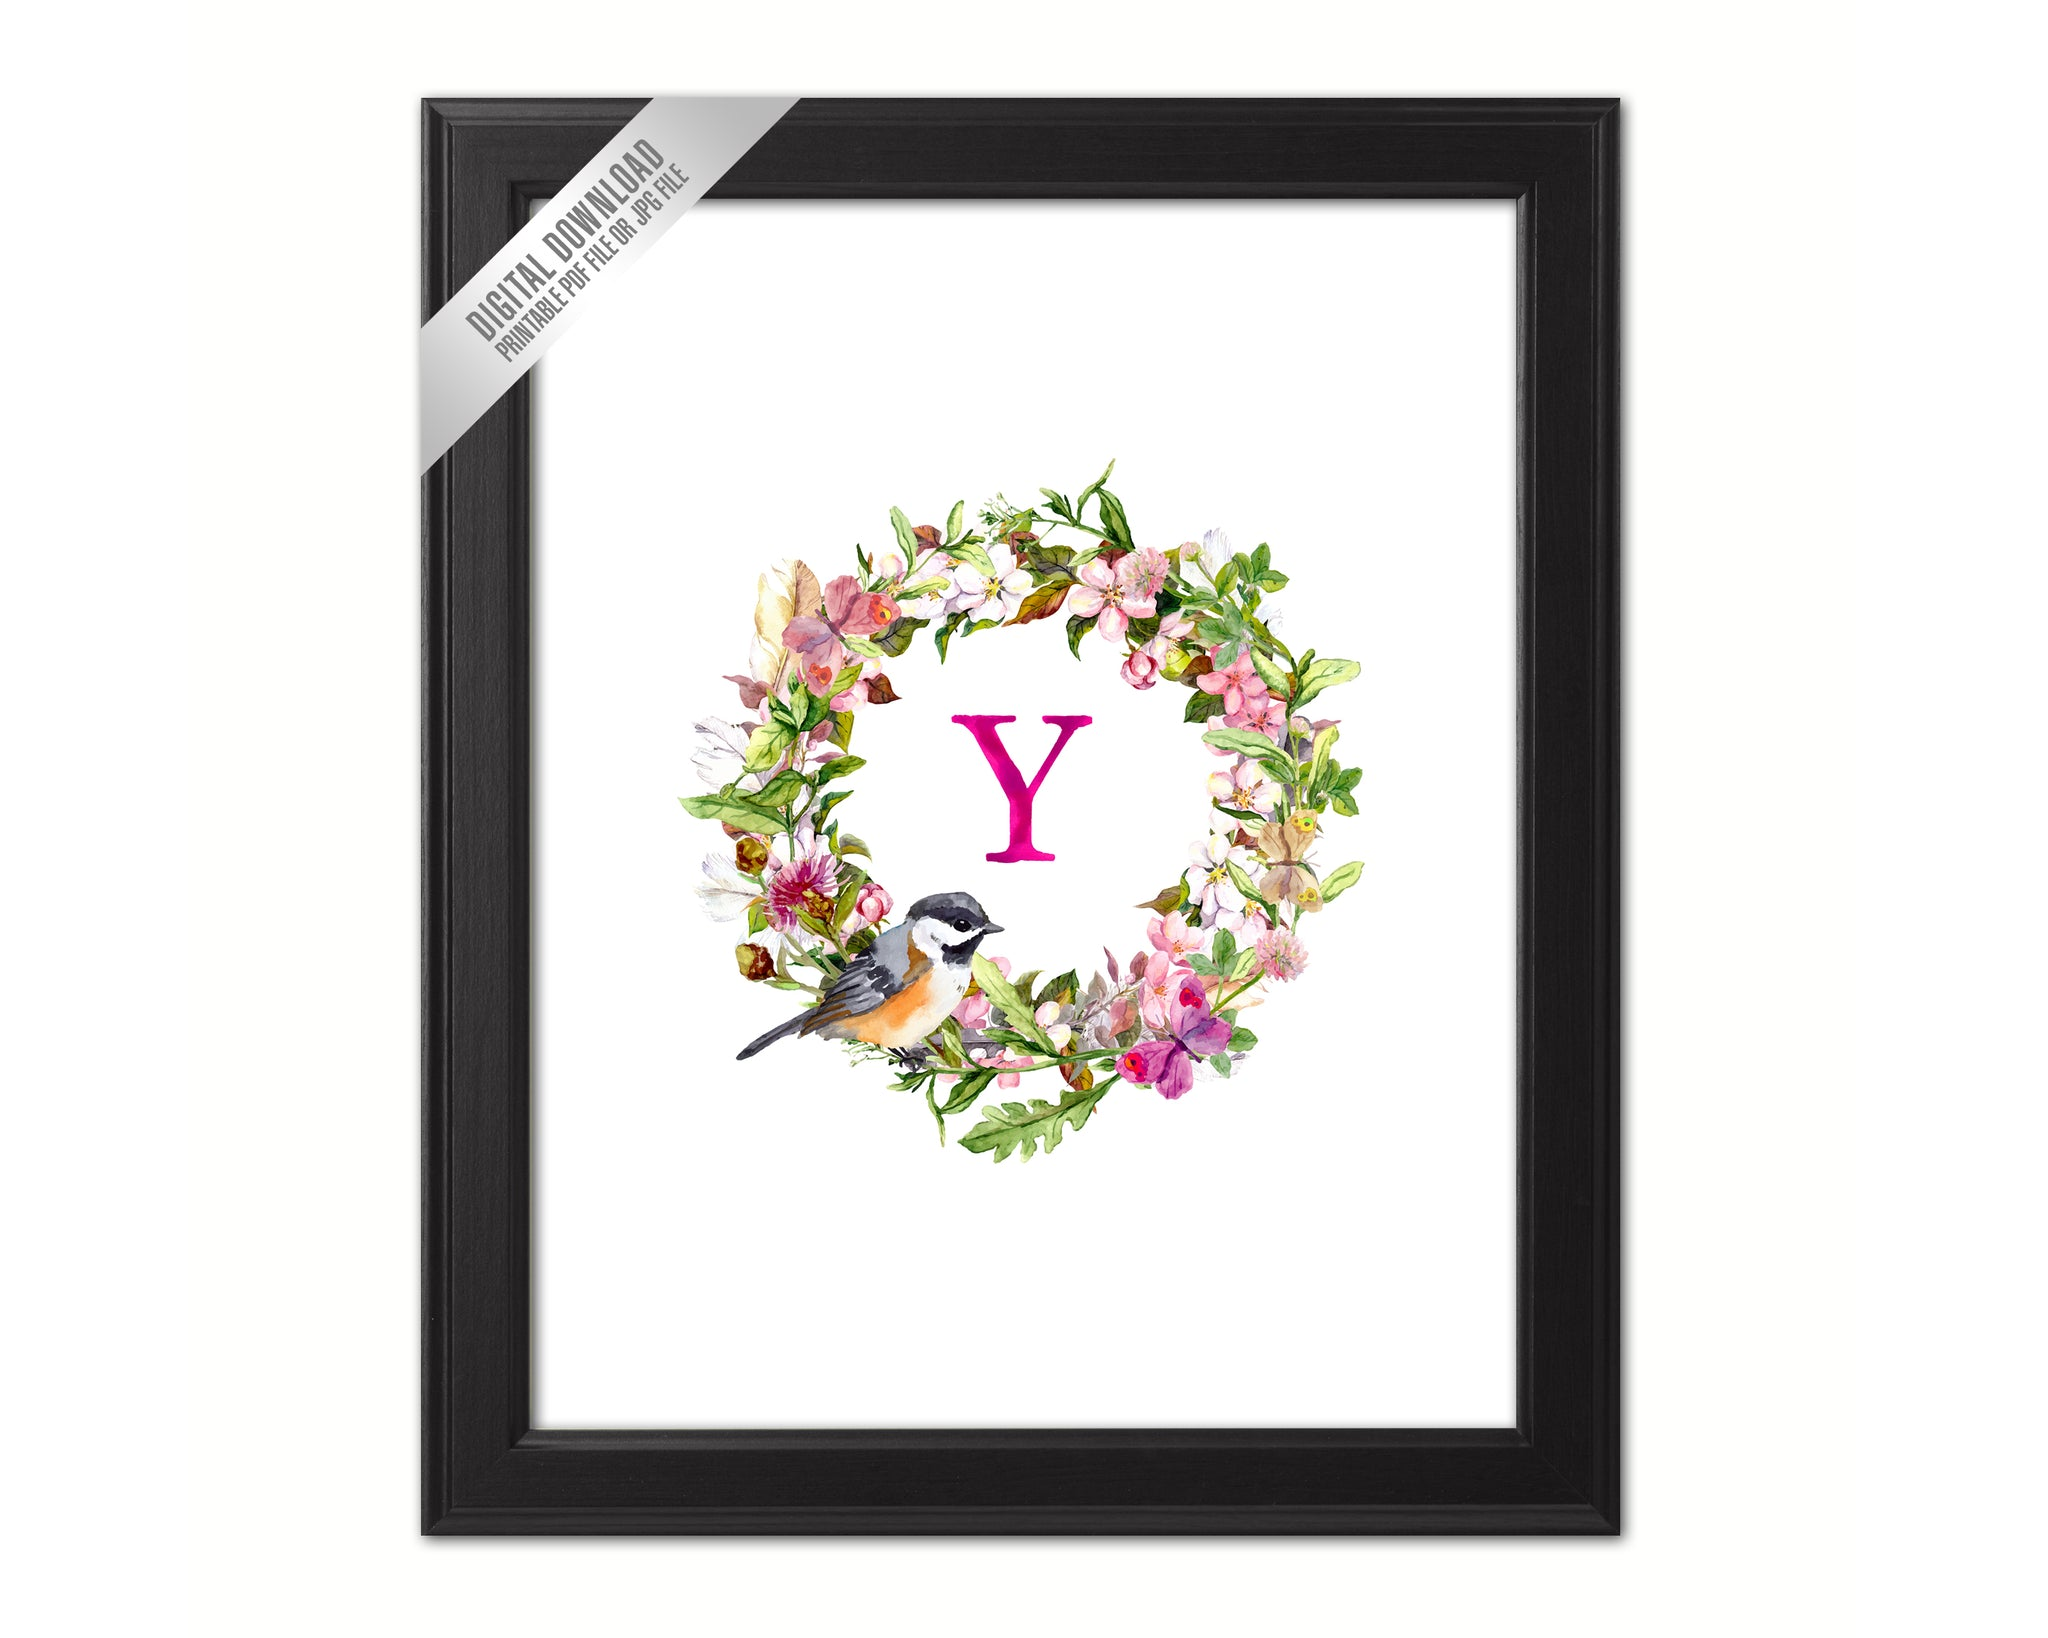 Letter Y Monogram Initial Wall Art Custom Letters Printable Home Decor Watercolor Wreath Gift for Her Name Sign Digital Download